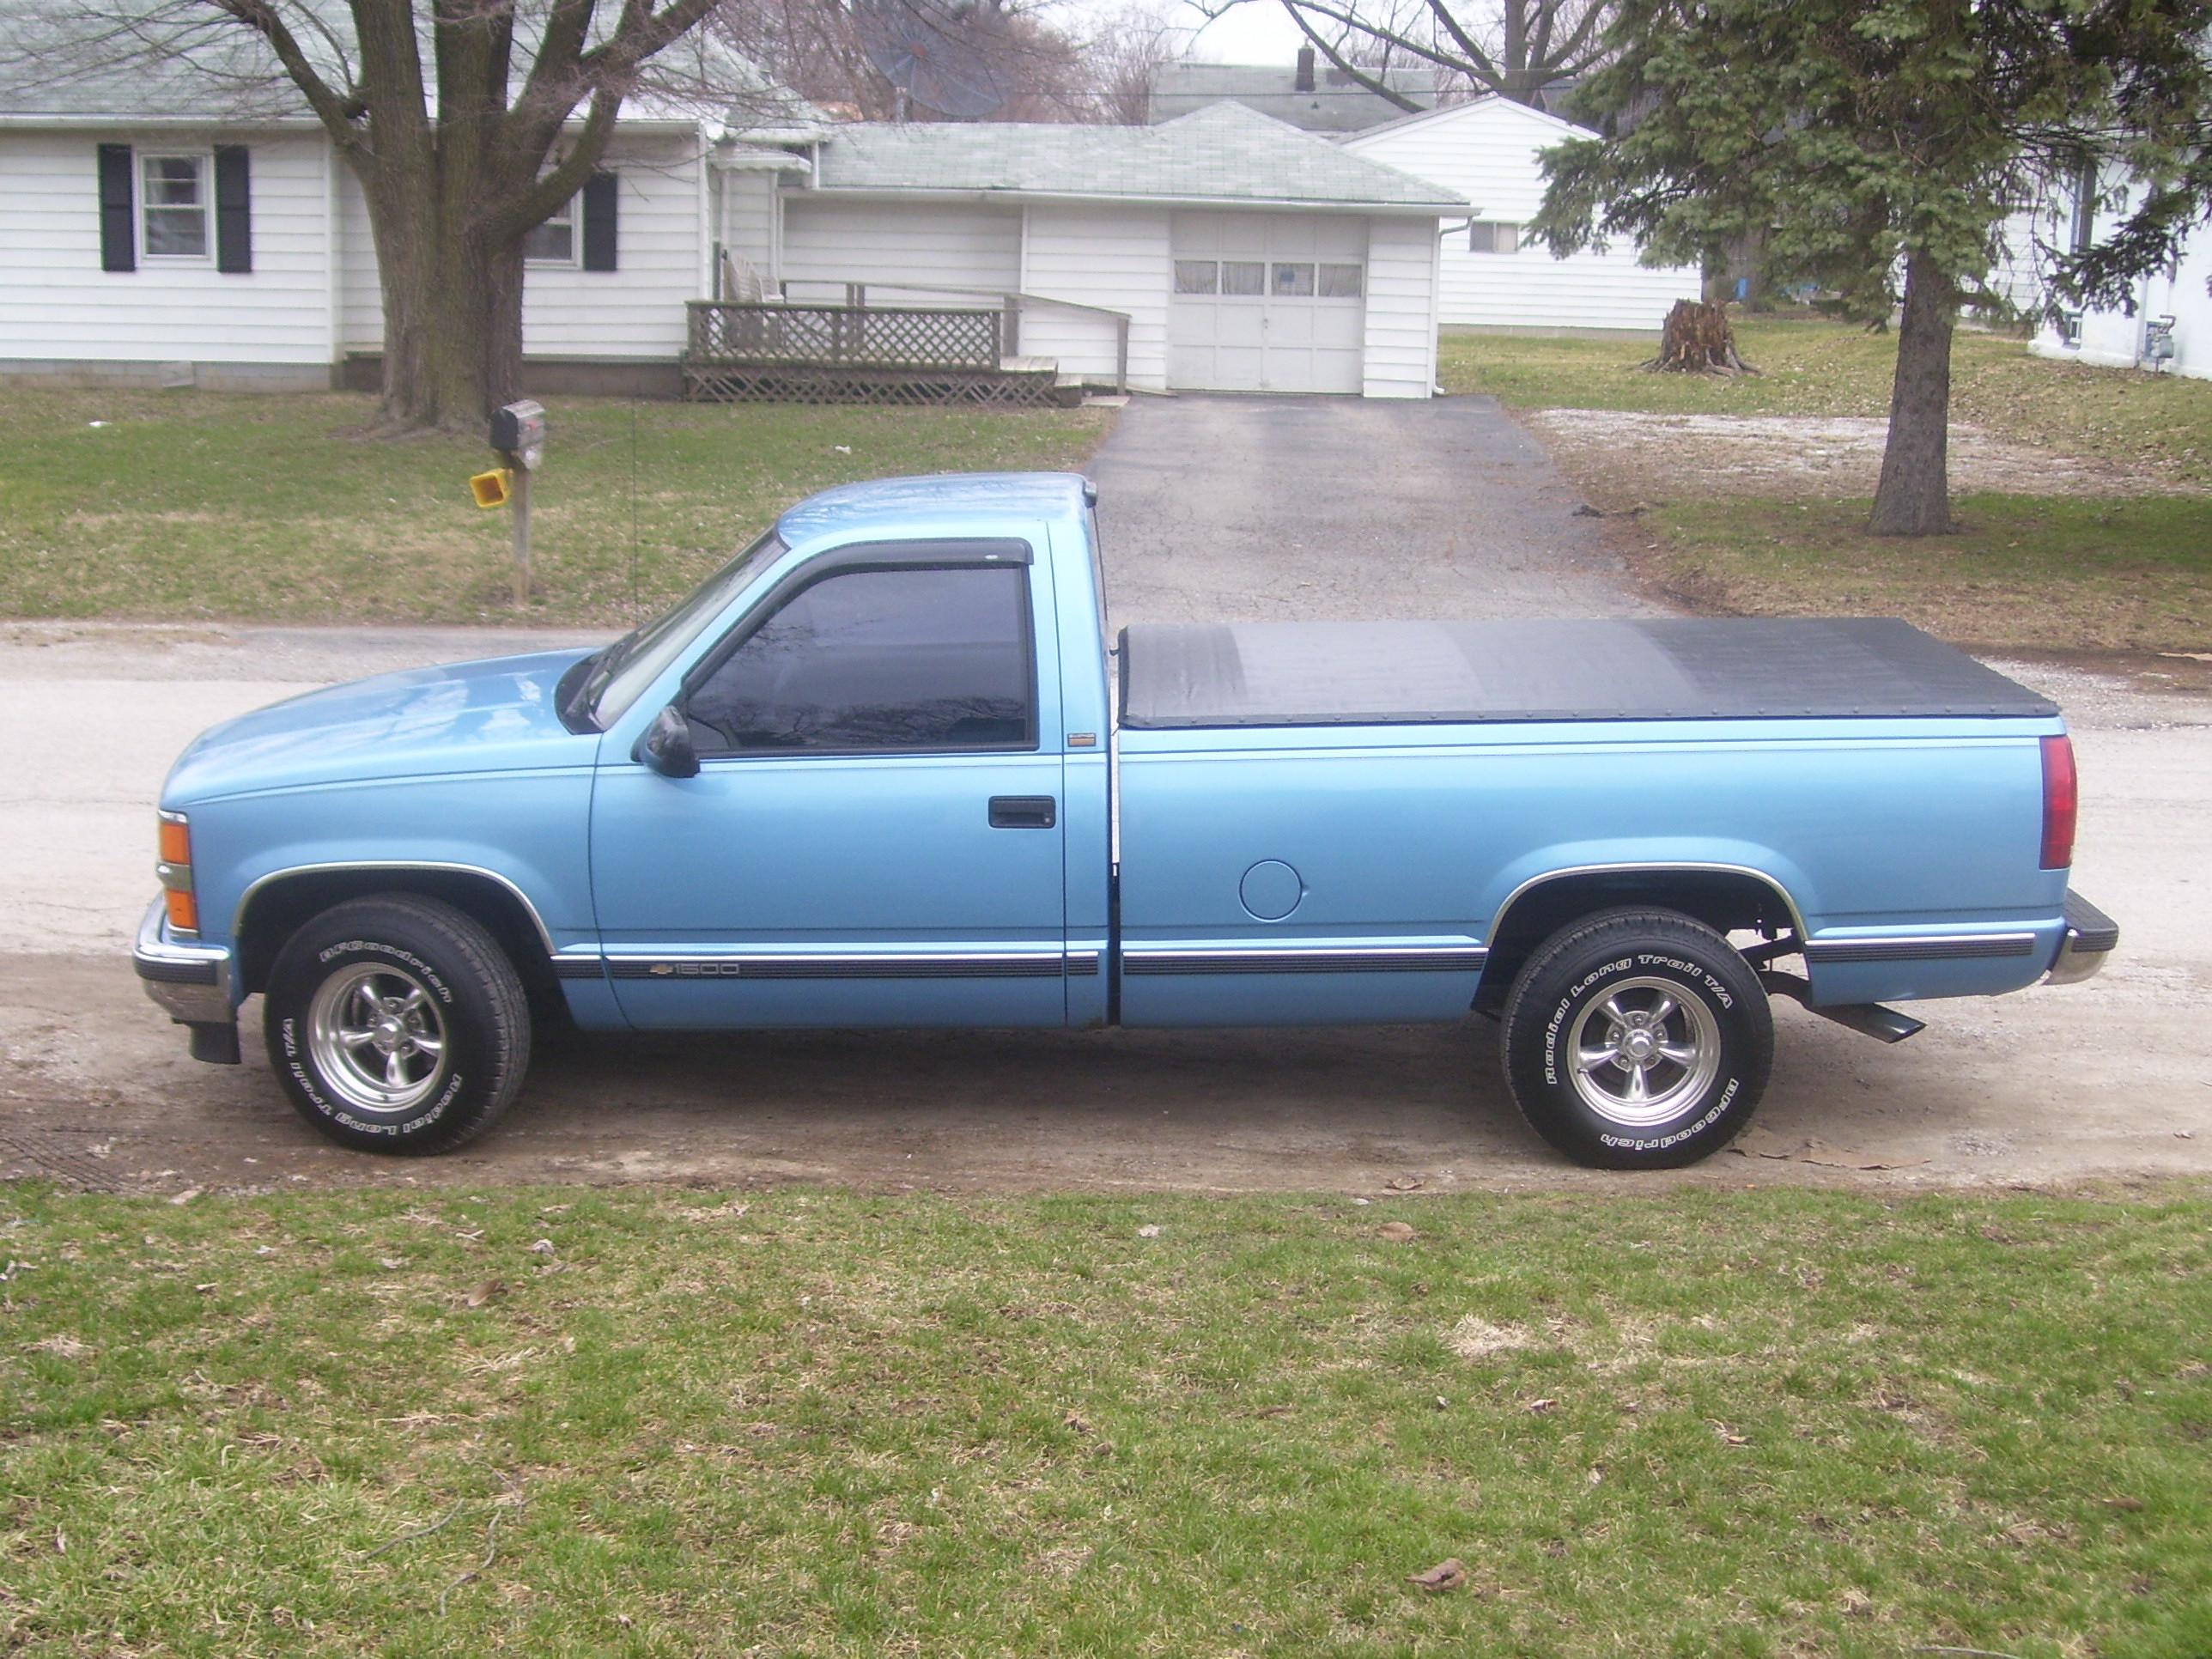 blue bandit 1996 chevrolet silverado 1500 regular cab. Black Bedroom Furniture Sets. Home Design Ideas